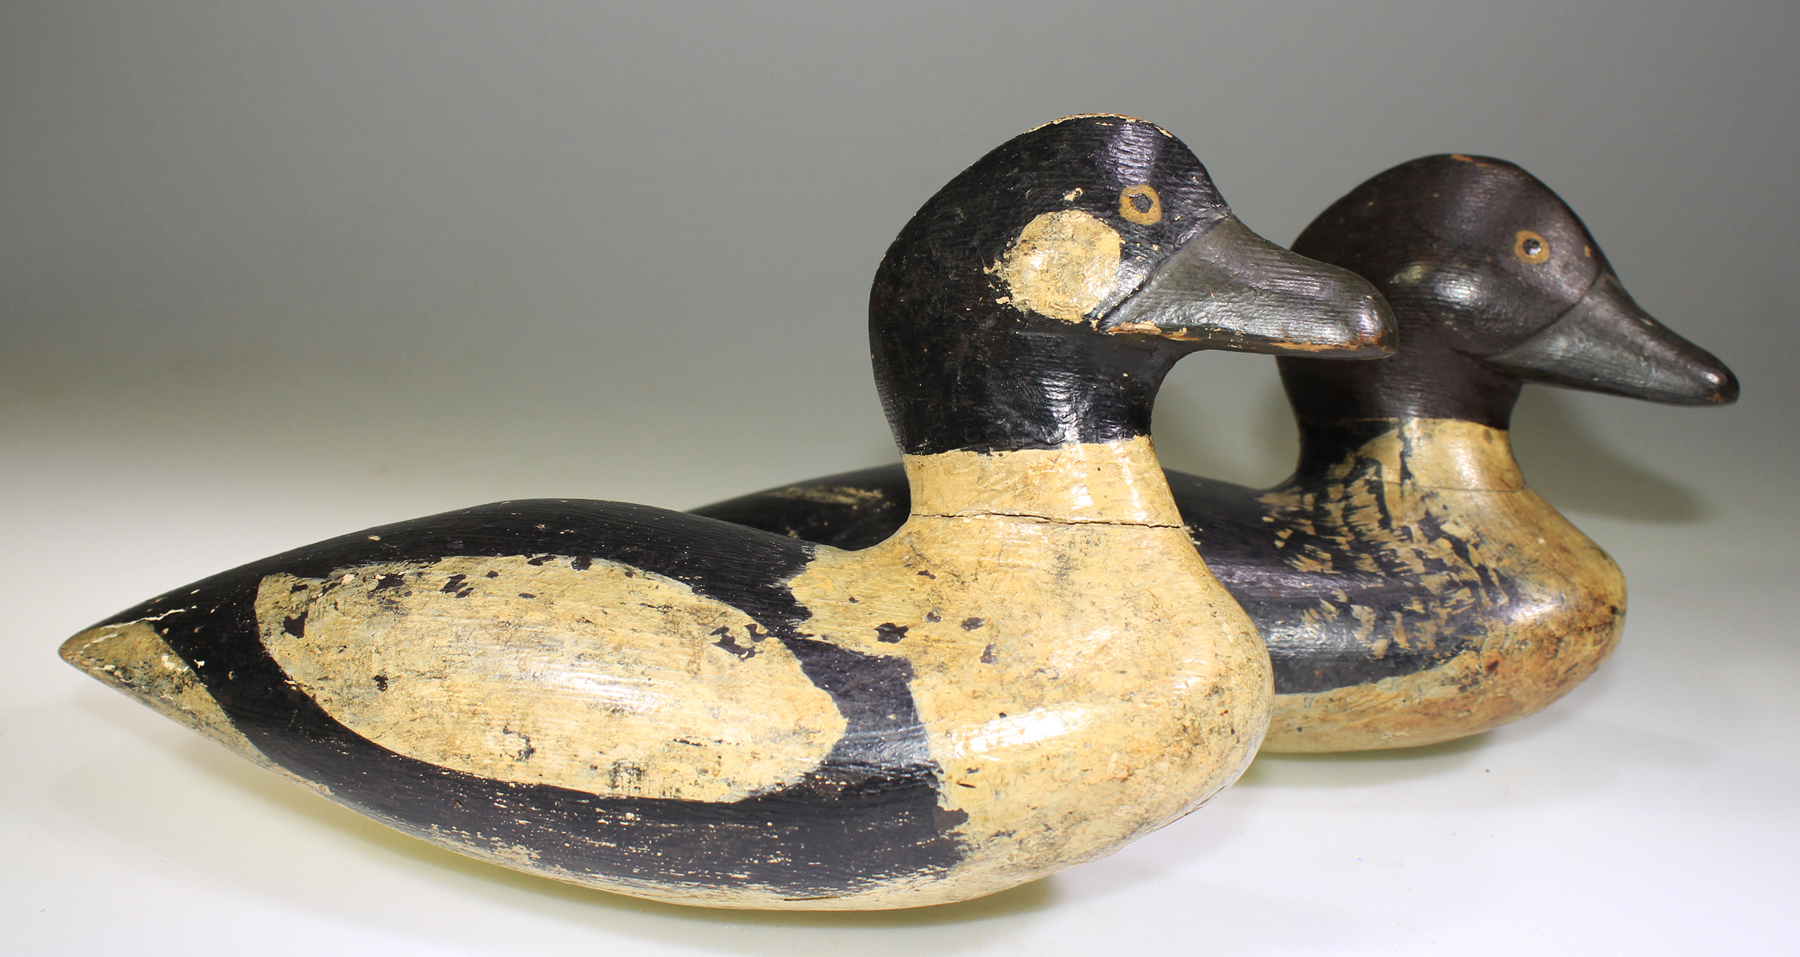 NICE PAIR OF GOLDENEYE DECOYS CARVED BY SAM HUTCHINS